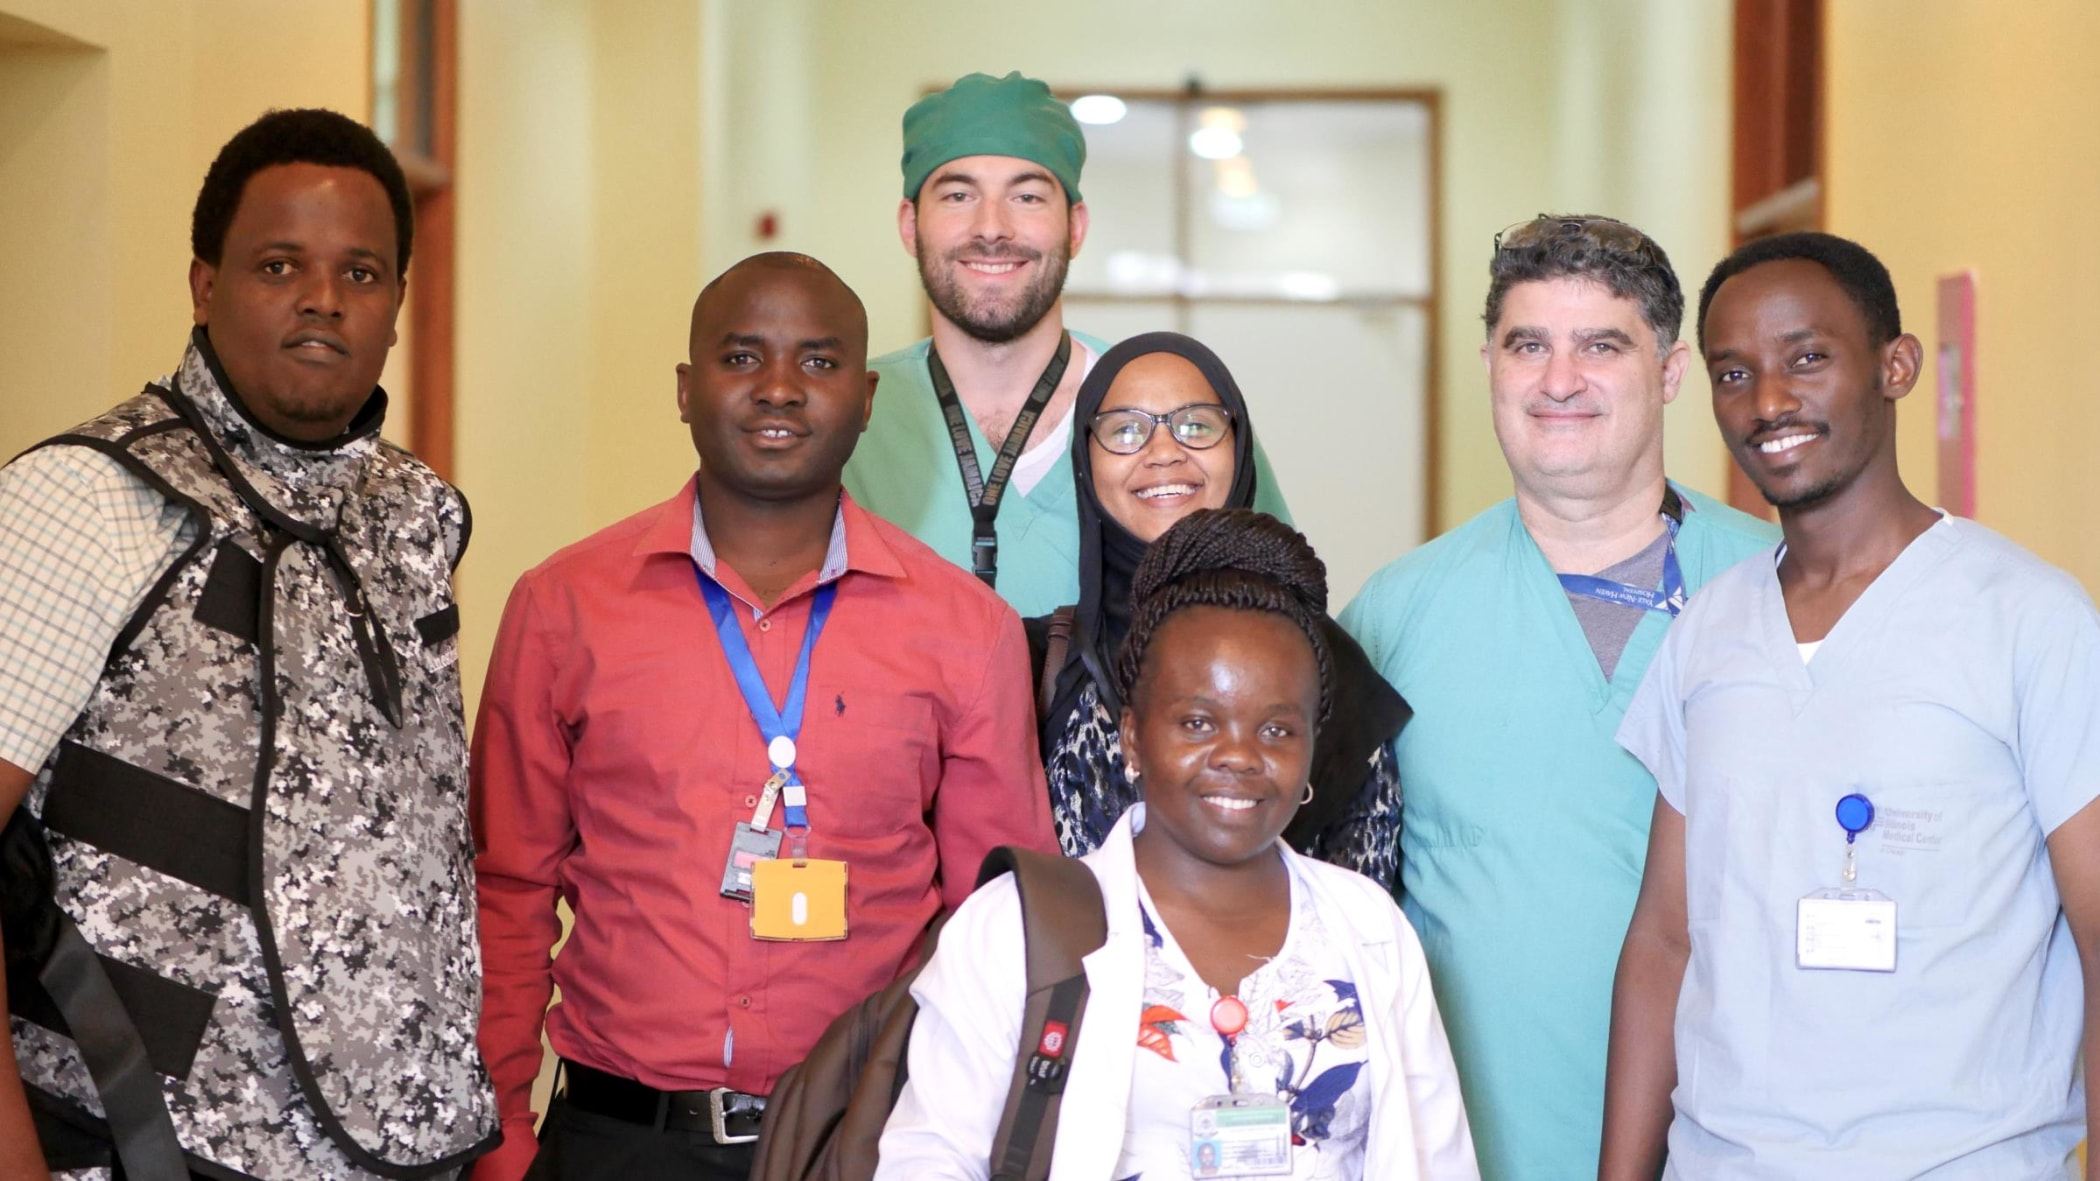 IR team after a long day of procedures. From left to right: IR resident Dr. Erick Mbuguje, IR technologist Basilio Fabian Maha, visiting IR resident Fabian Laage Gaupp, IR residents Dr. Azza Naif and Dr. Dr. Mwivano Shemwetta, visiting IR faculty Dr. Douglas Silin, and IR resident Ivan Rukundo.